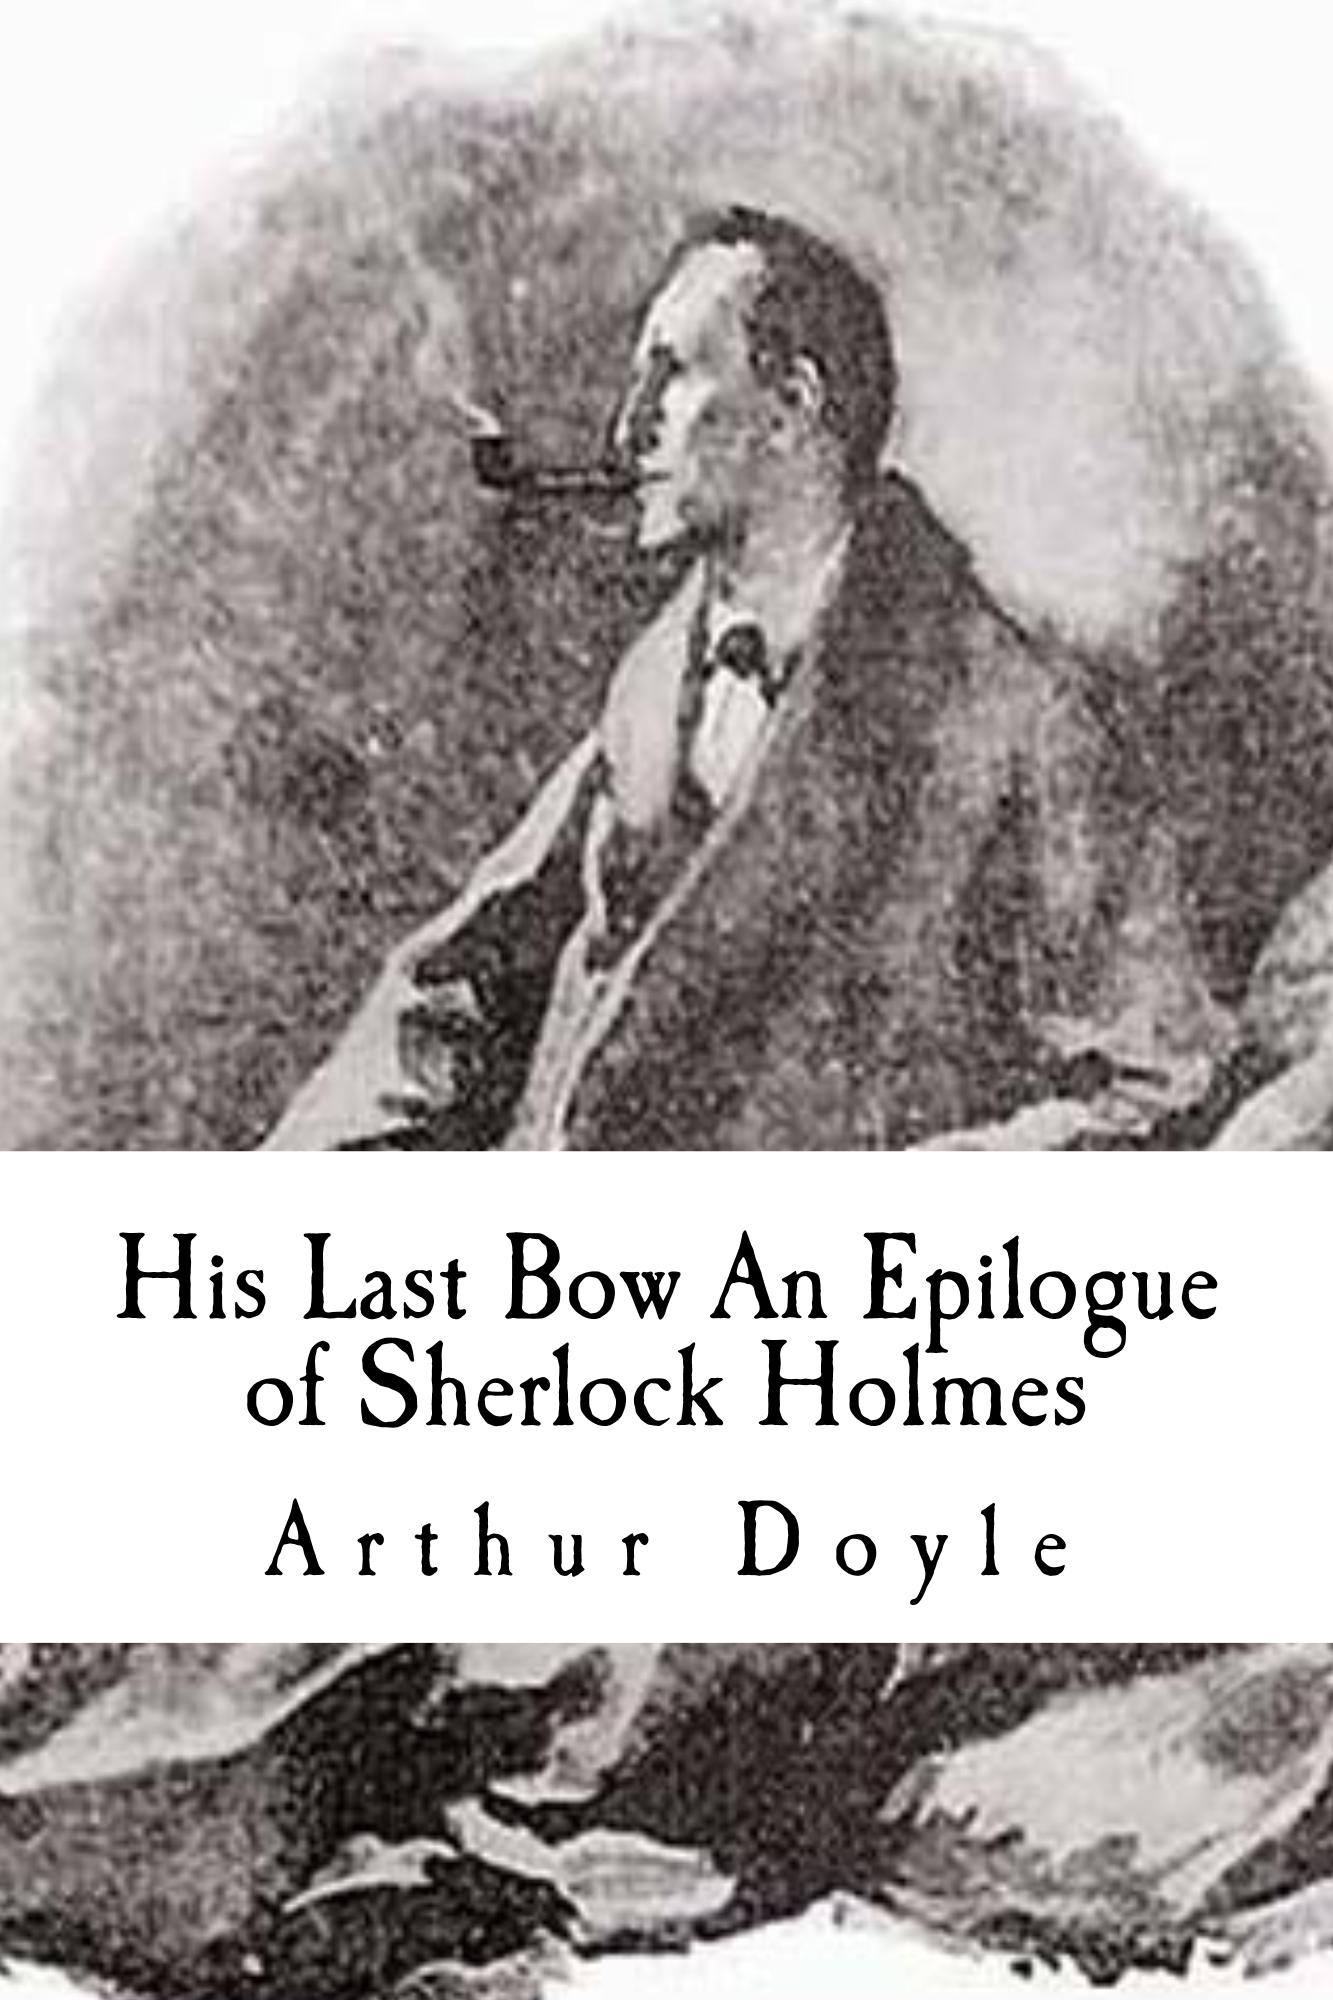 His Last Bow An Epilogue of Sherlock Holmes By: Arthur Ignatius Conan Doyle